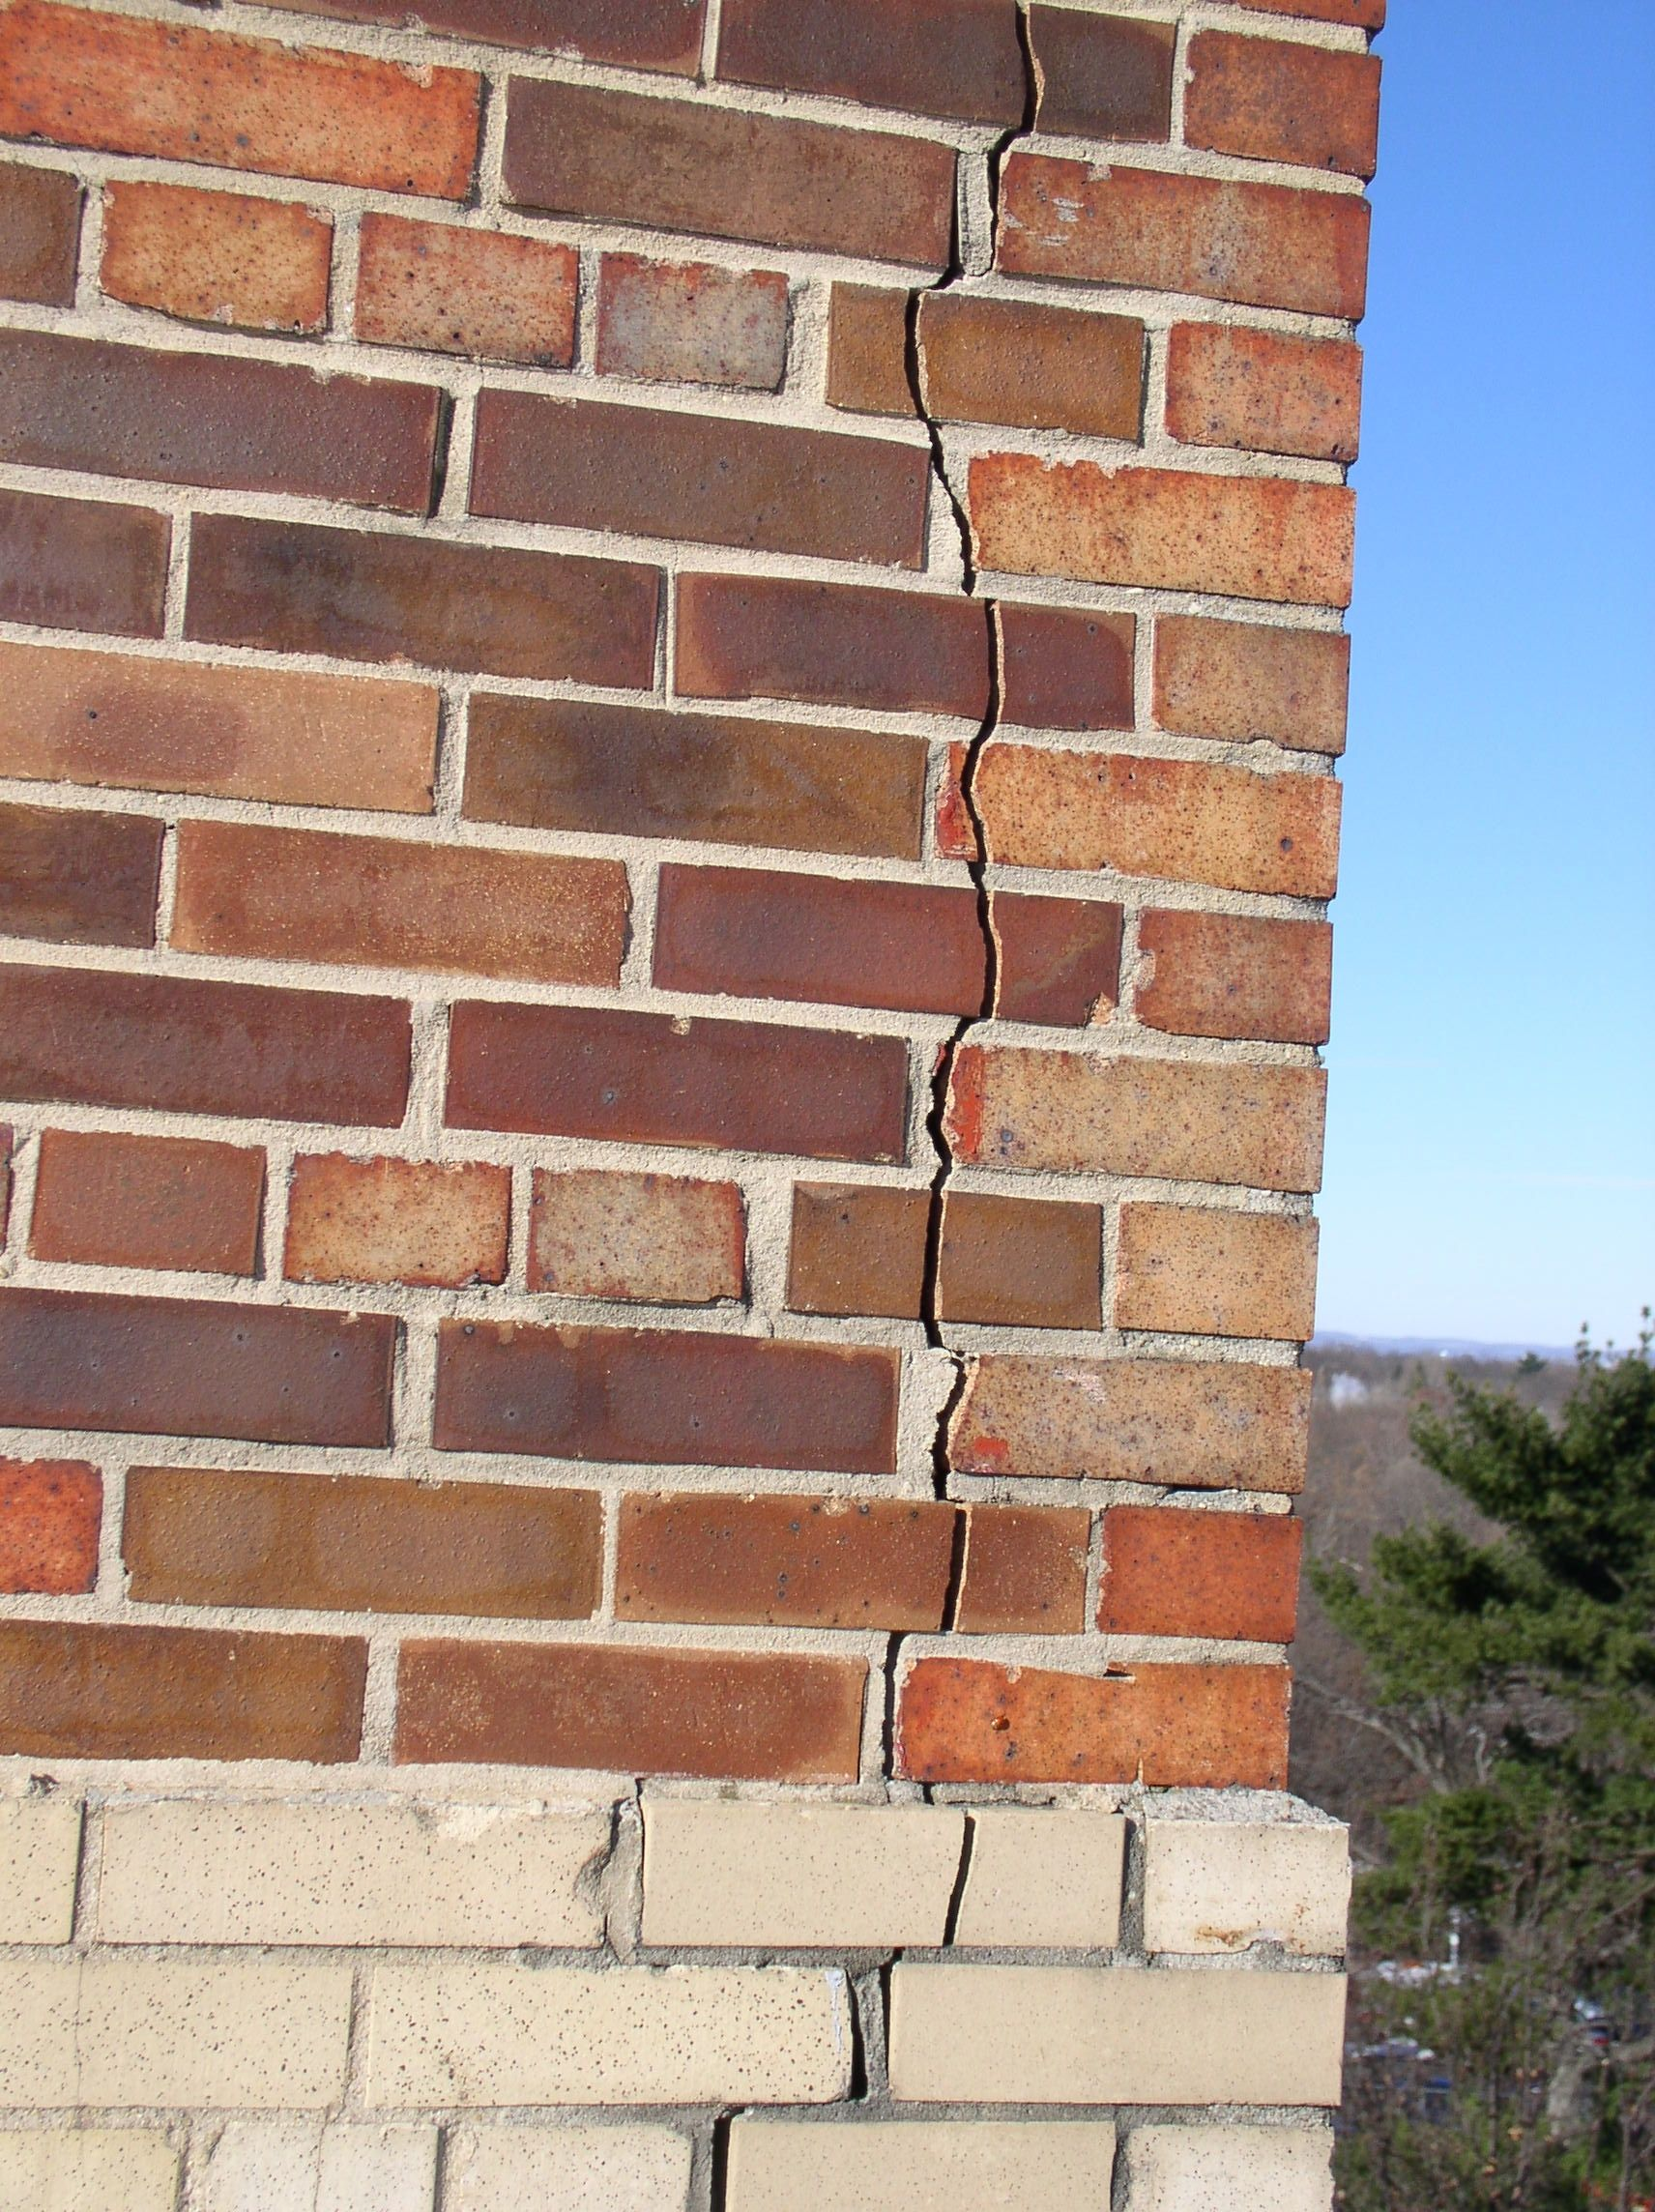 Long Vertical Cracks At Building Corners May Indicate Underlying Structural Distress In Brick Masonry Wall Sys Brick Masonry Masonry Wall Masonry Construction